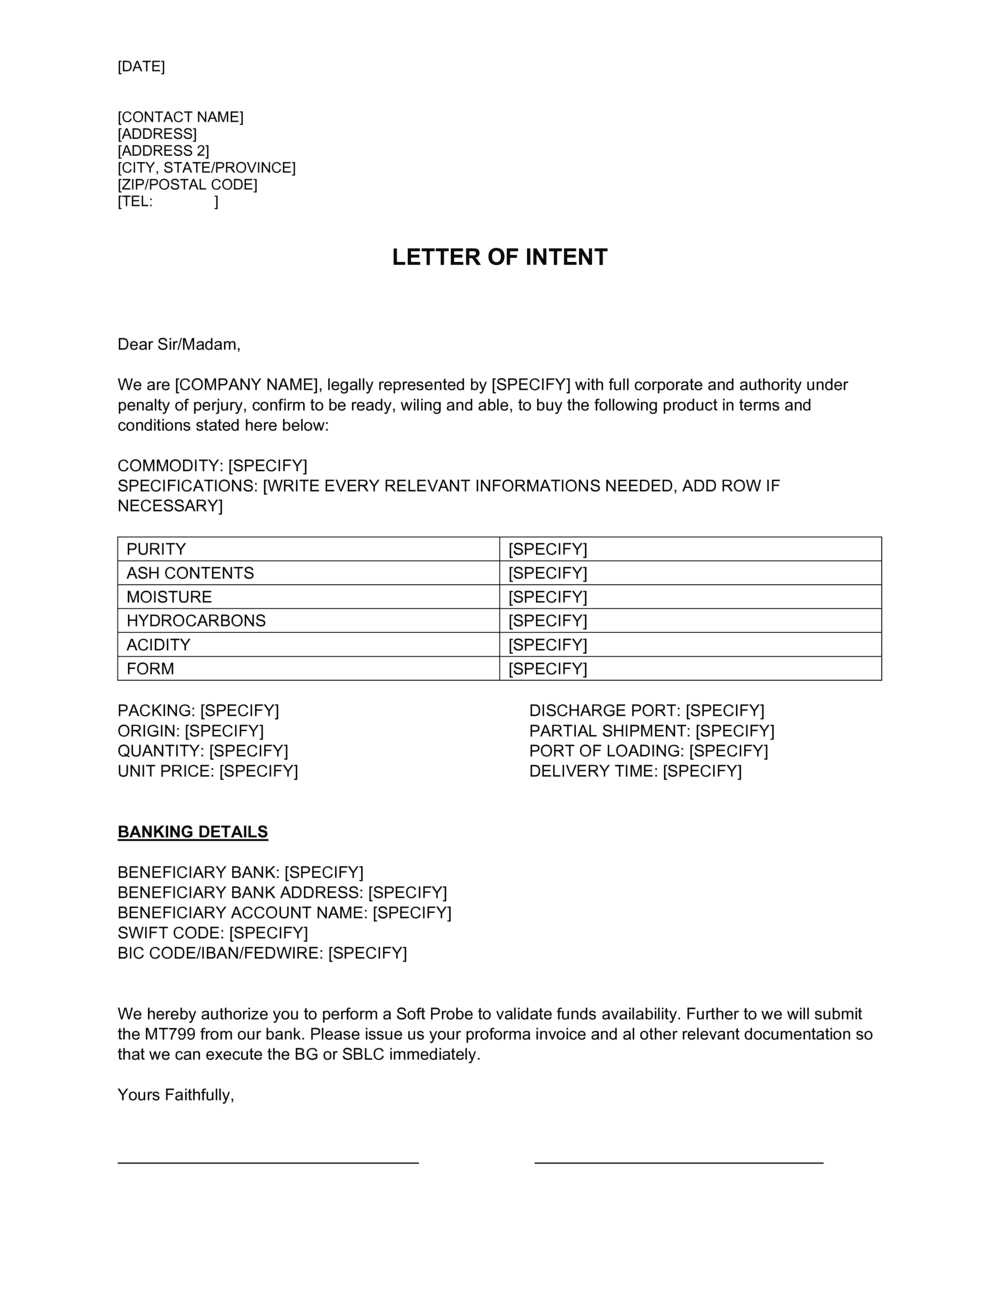 Business-in-a-Box's Letter Of Intent Commodity Template